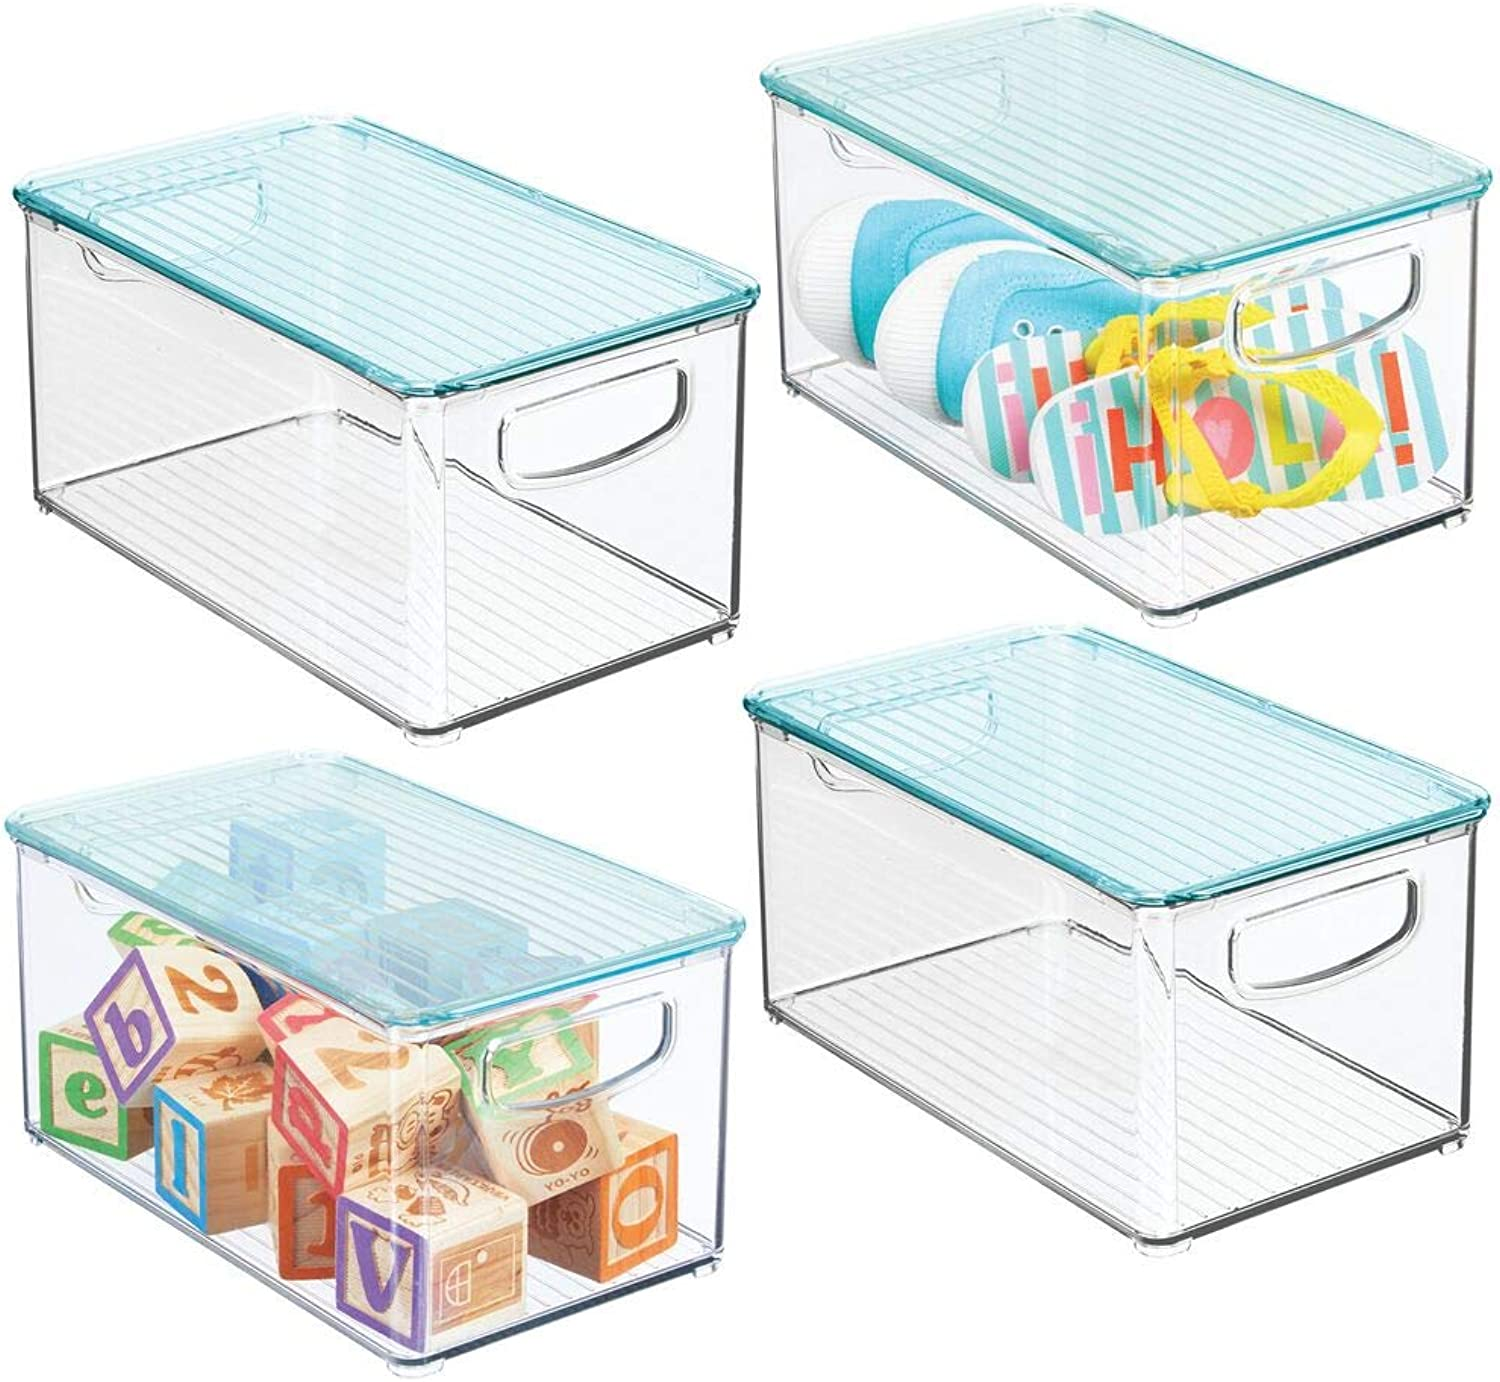 MDesign Storage Organizer Bin Box with Lid for Kid Supplies in Kitchen, Pantry, Nursery, Bedroom, Playroom - Holds Snacks, Bottles, Baby Food, Diapers, Wipes, Toys - 10  Long, 4 Pack - Clear Sea bluee